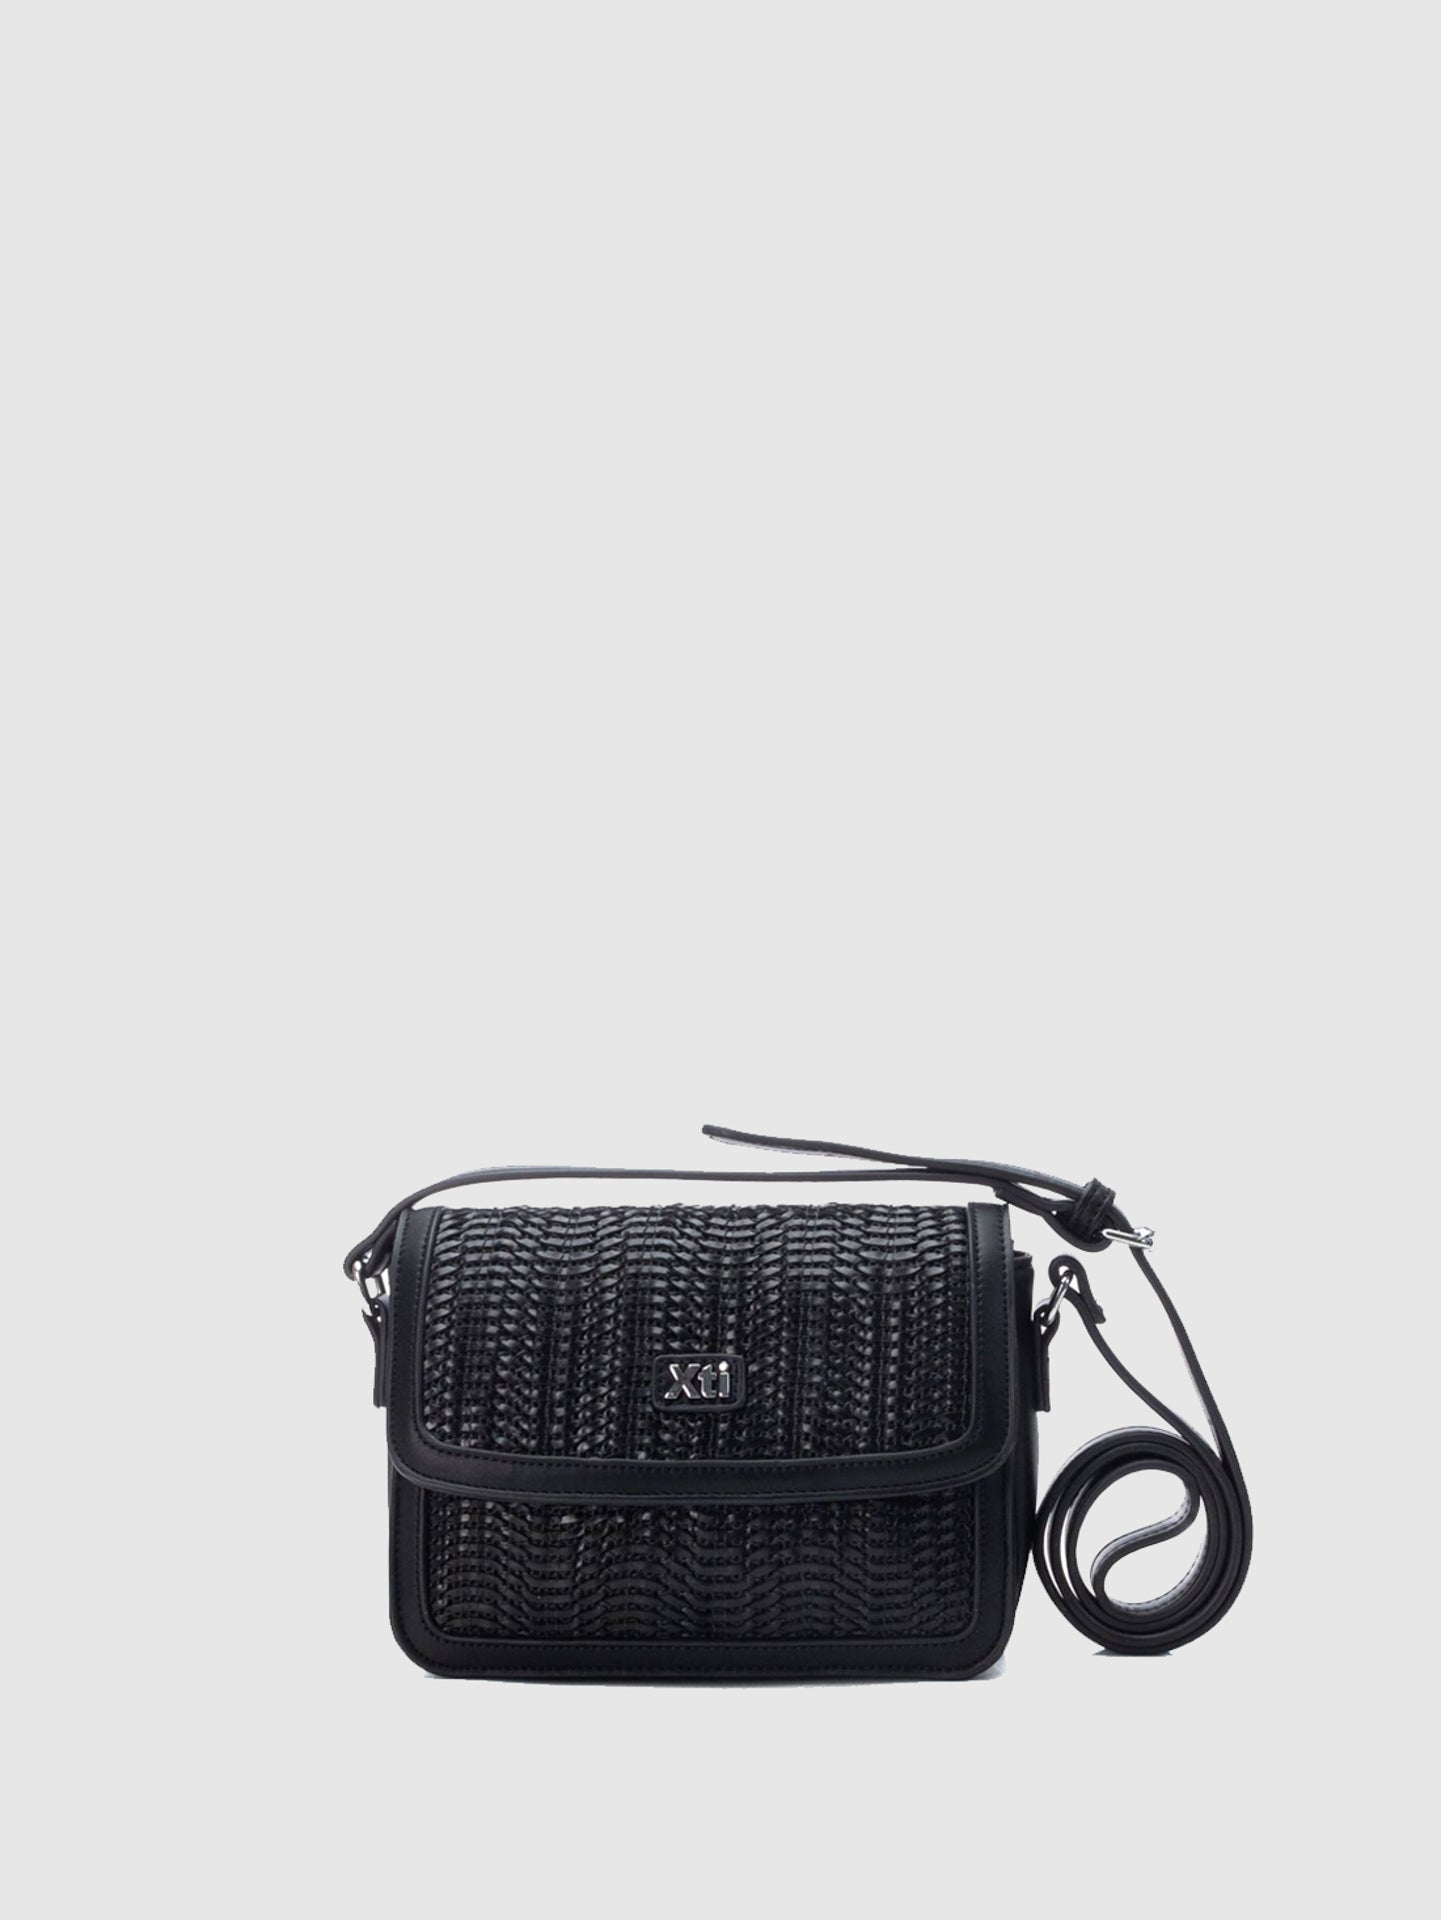 XTI Black Crossbody Bag